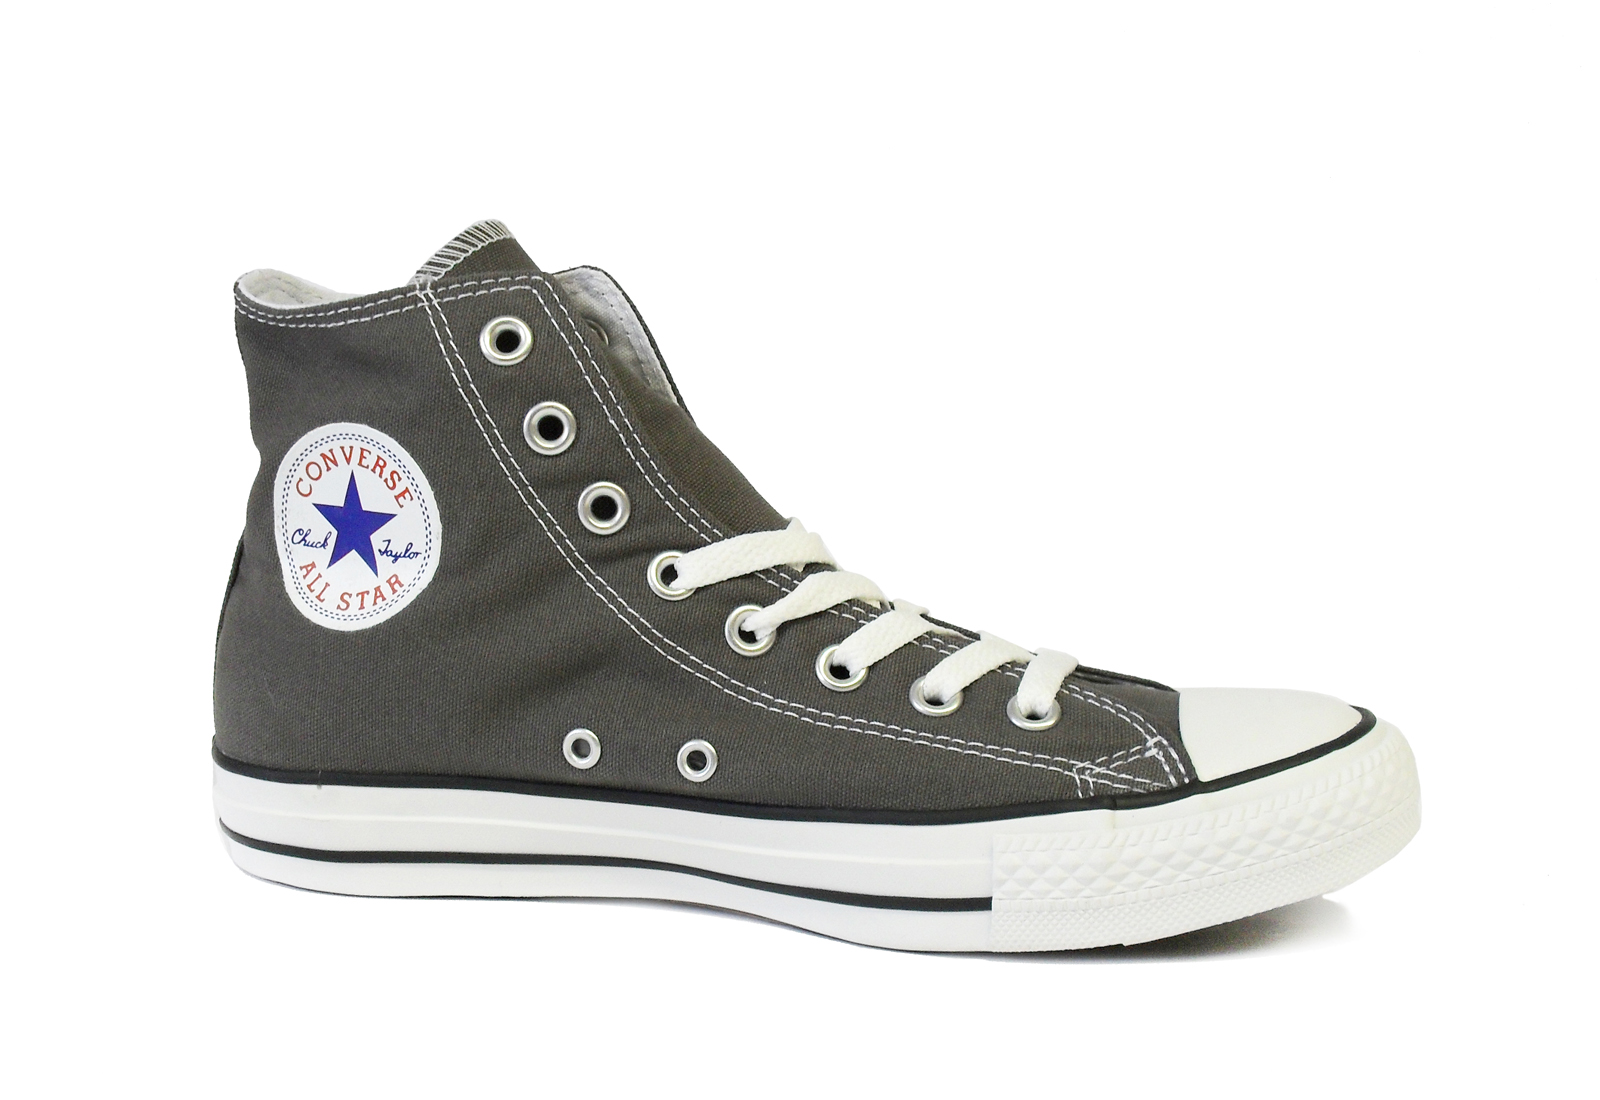 Converse Tornacipő - Chuck Taylor All Star Specialty Hi - 1J793C - Office  Shoes Magyarország d149bad604